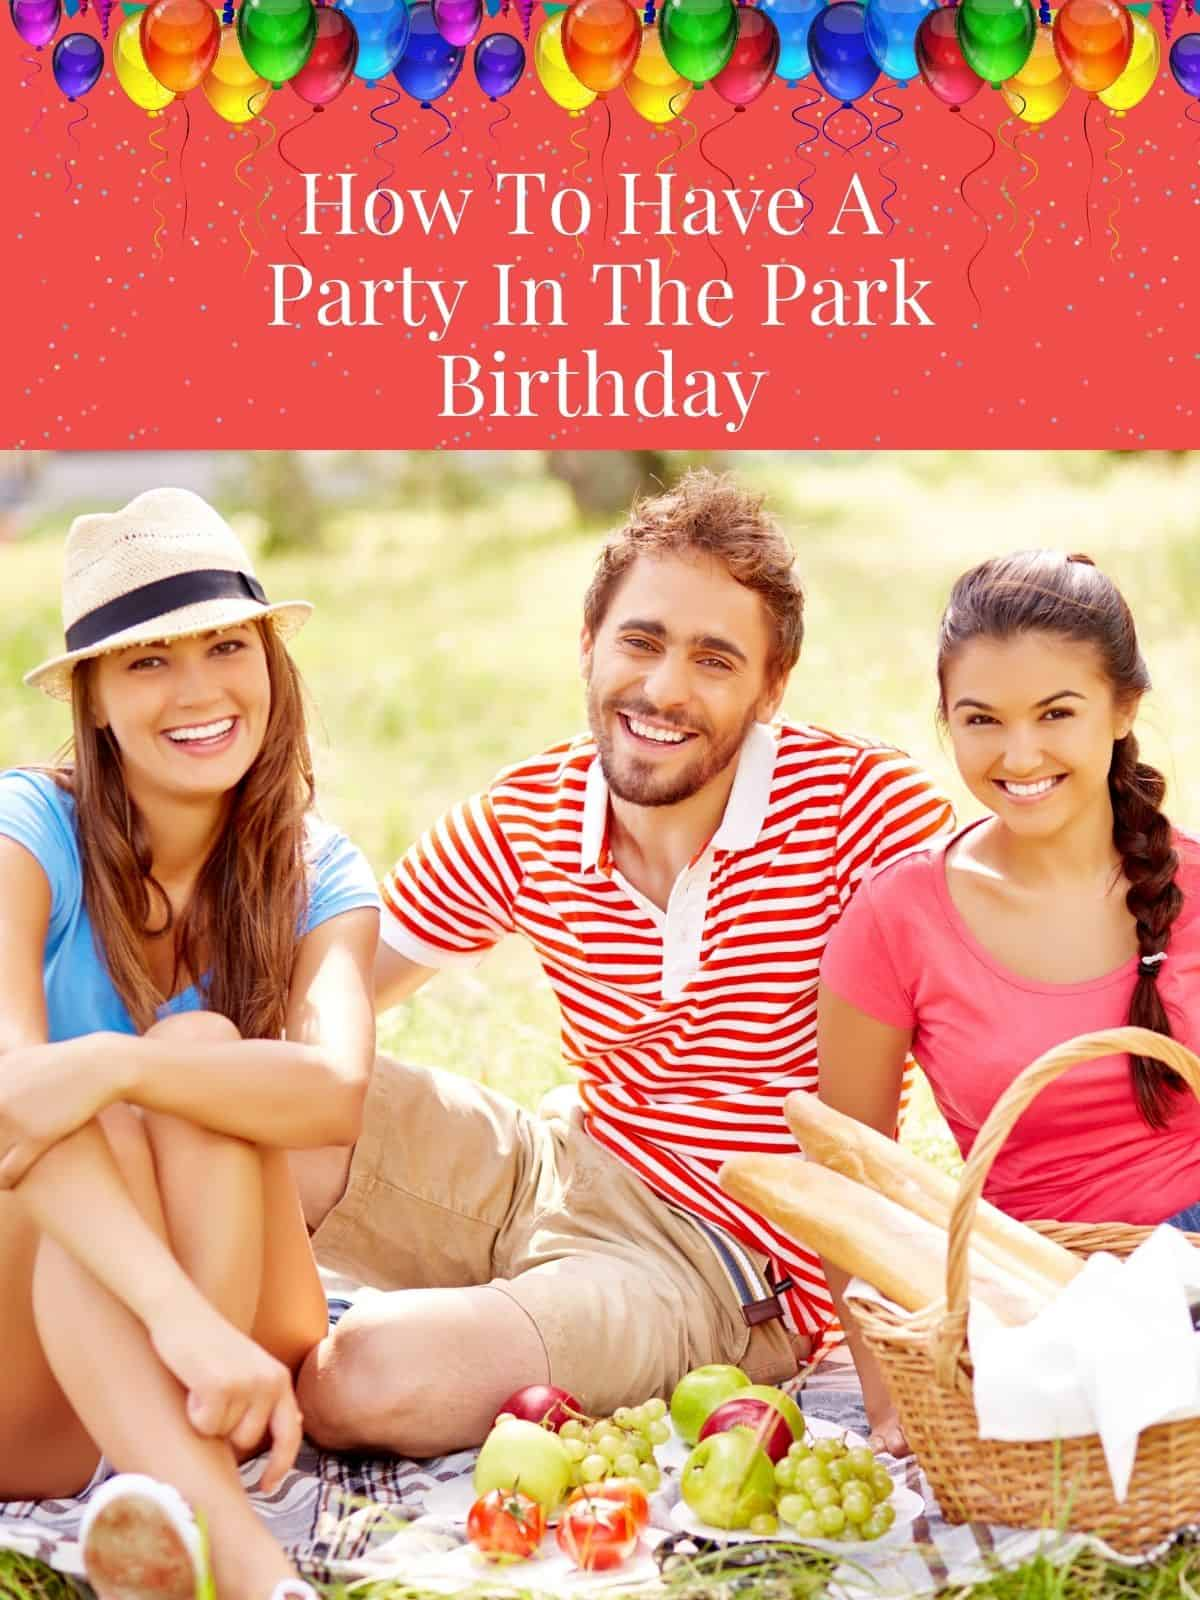 people at a birthday party picnic